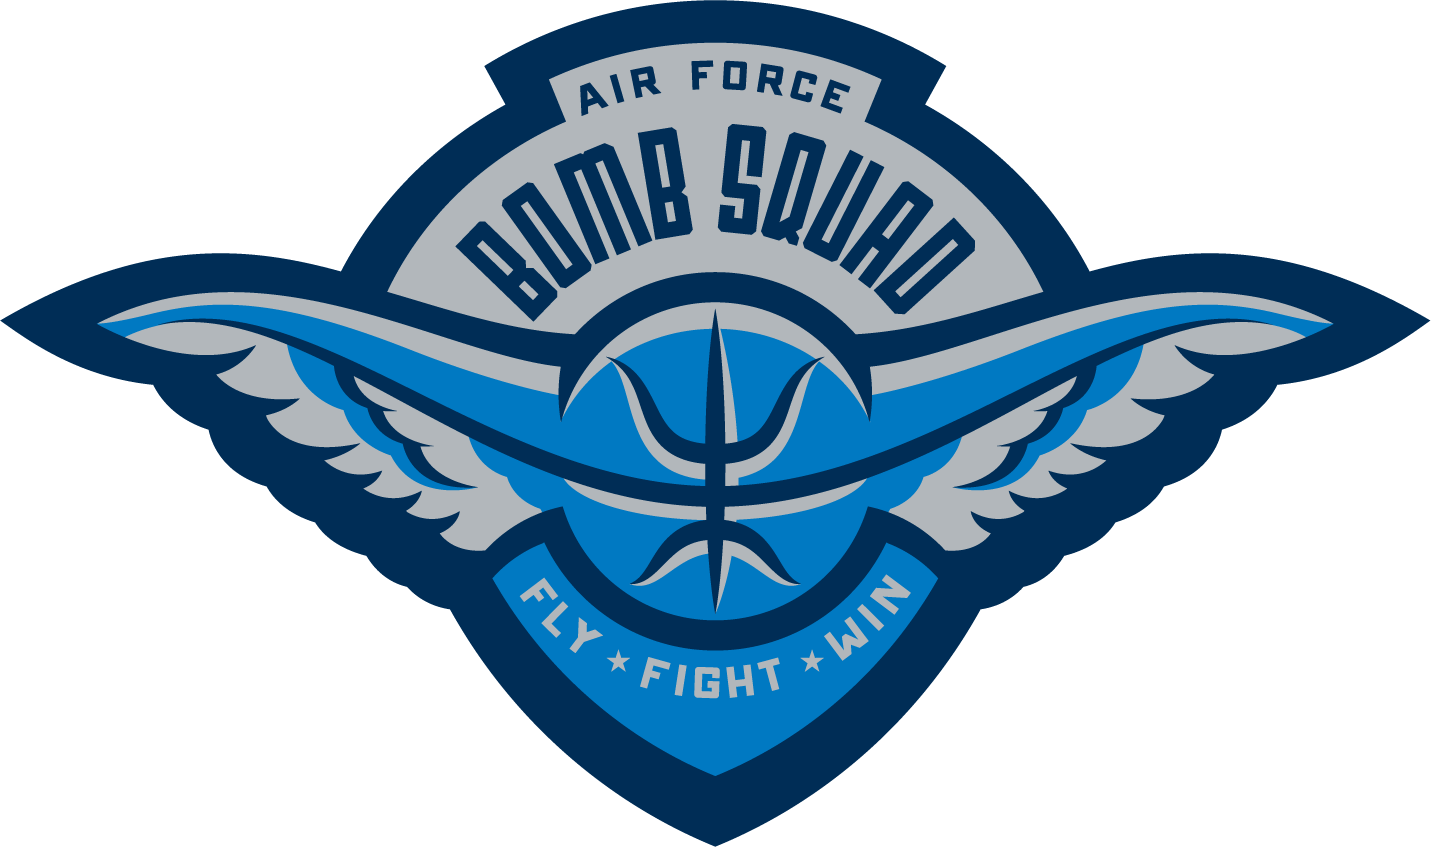 Air Force Logo Png image #29367